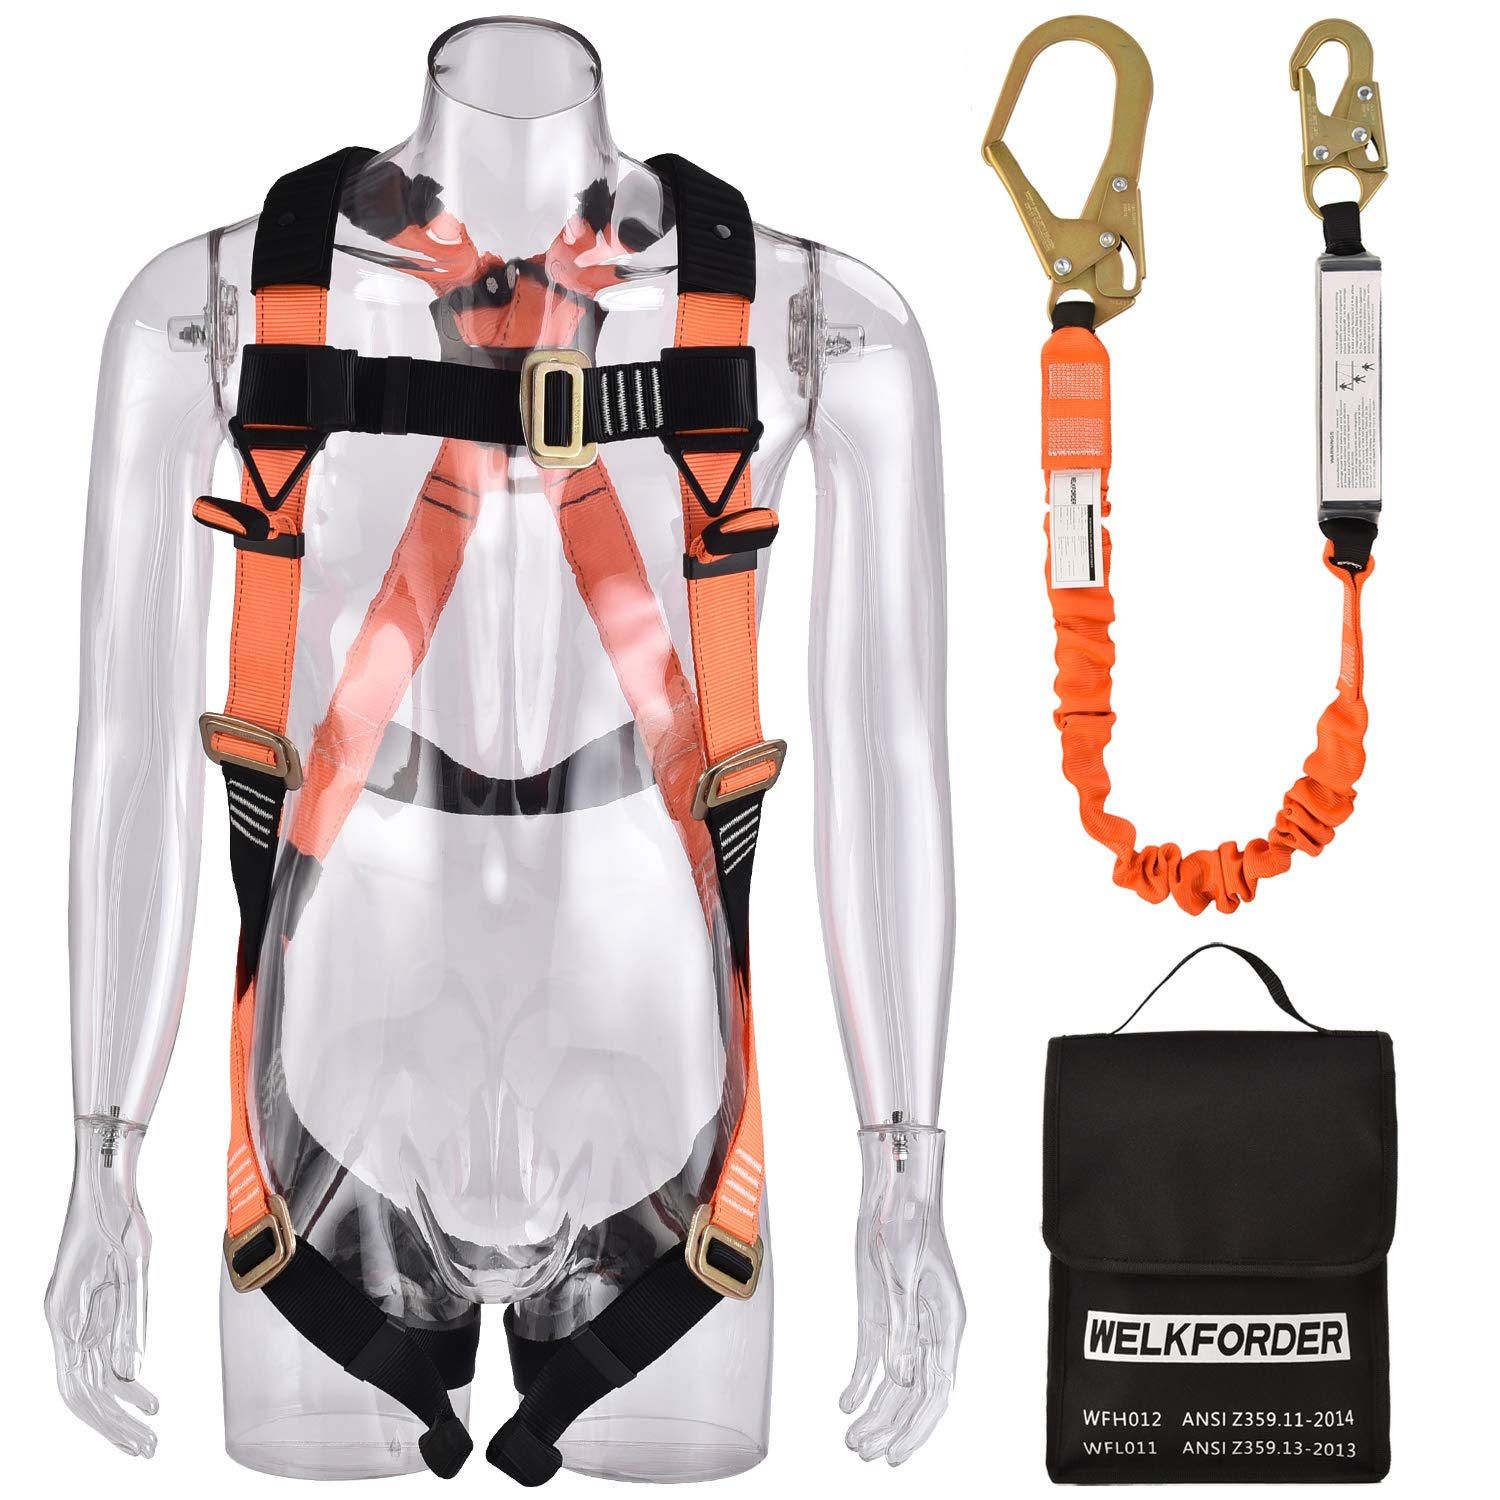 WELKFORDER 1 D-Ring Industrial Fall Protection Safety Harness Kit with  Single Leg 6-Foot Shock Absorber Stretch Lanyard ANSI Complaint Personal  Fall